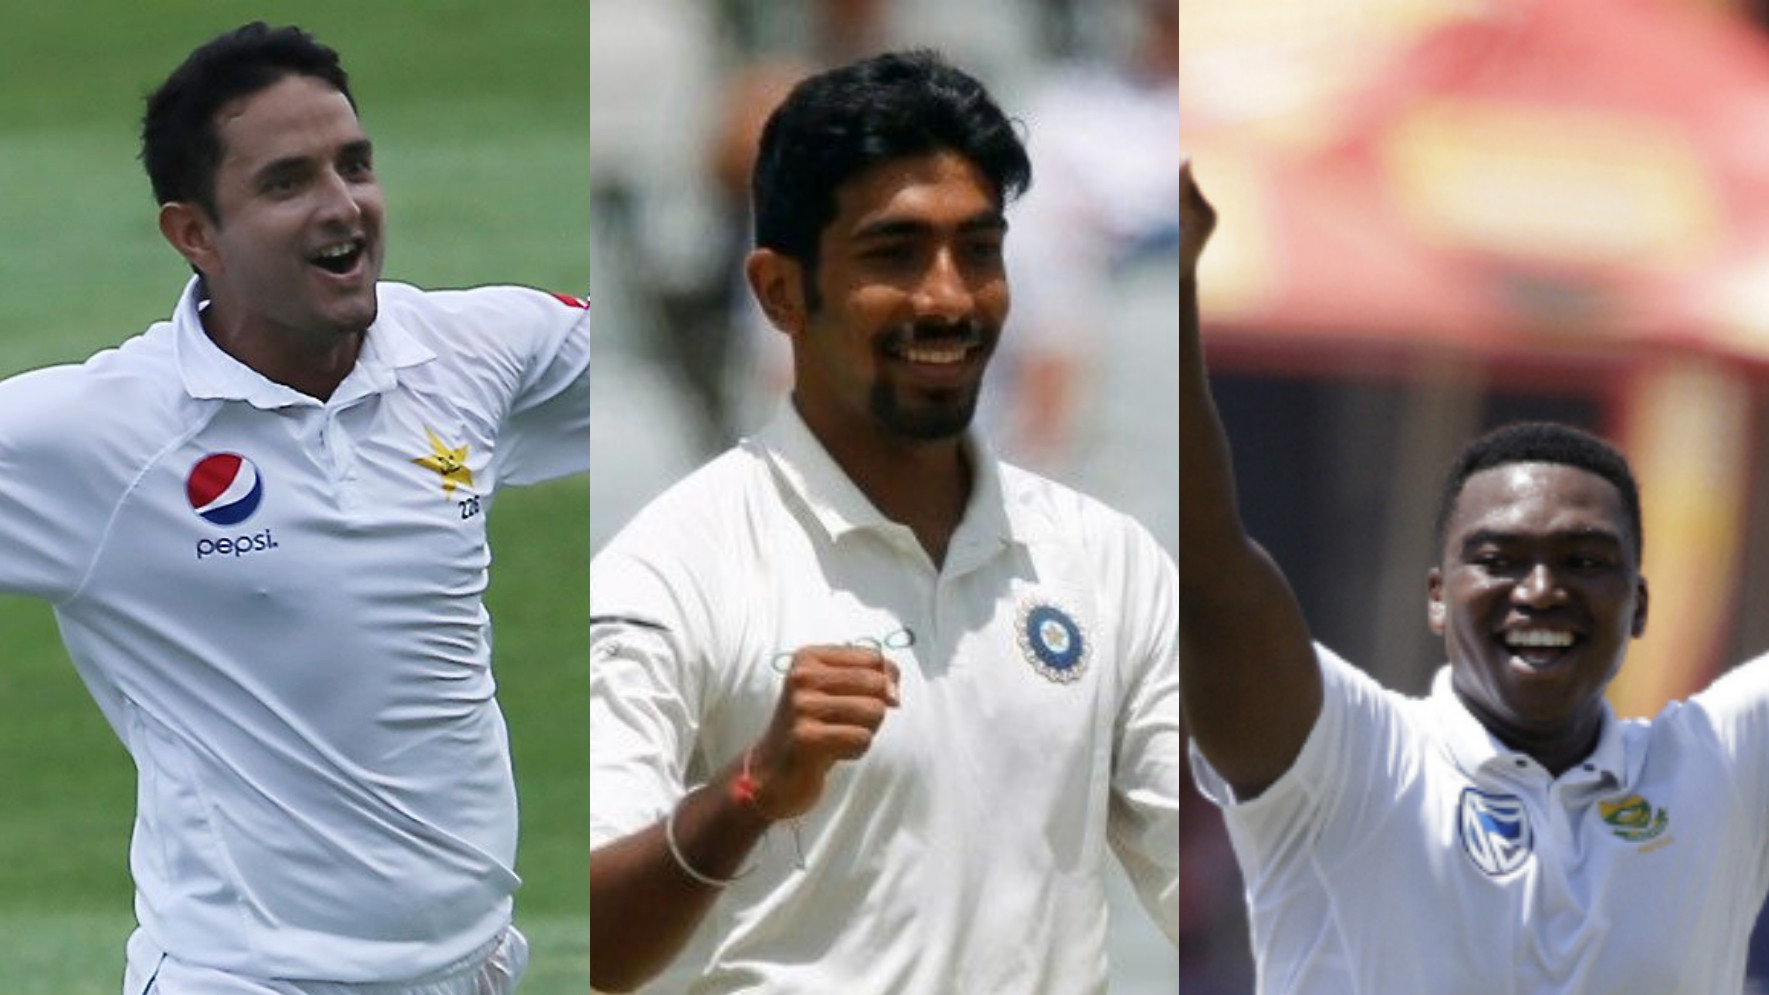 5 fast bowlers who might rule the roost in Test cricket in coming years